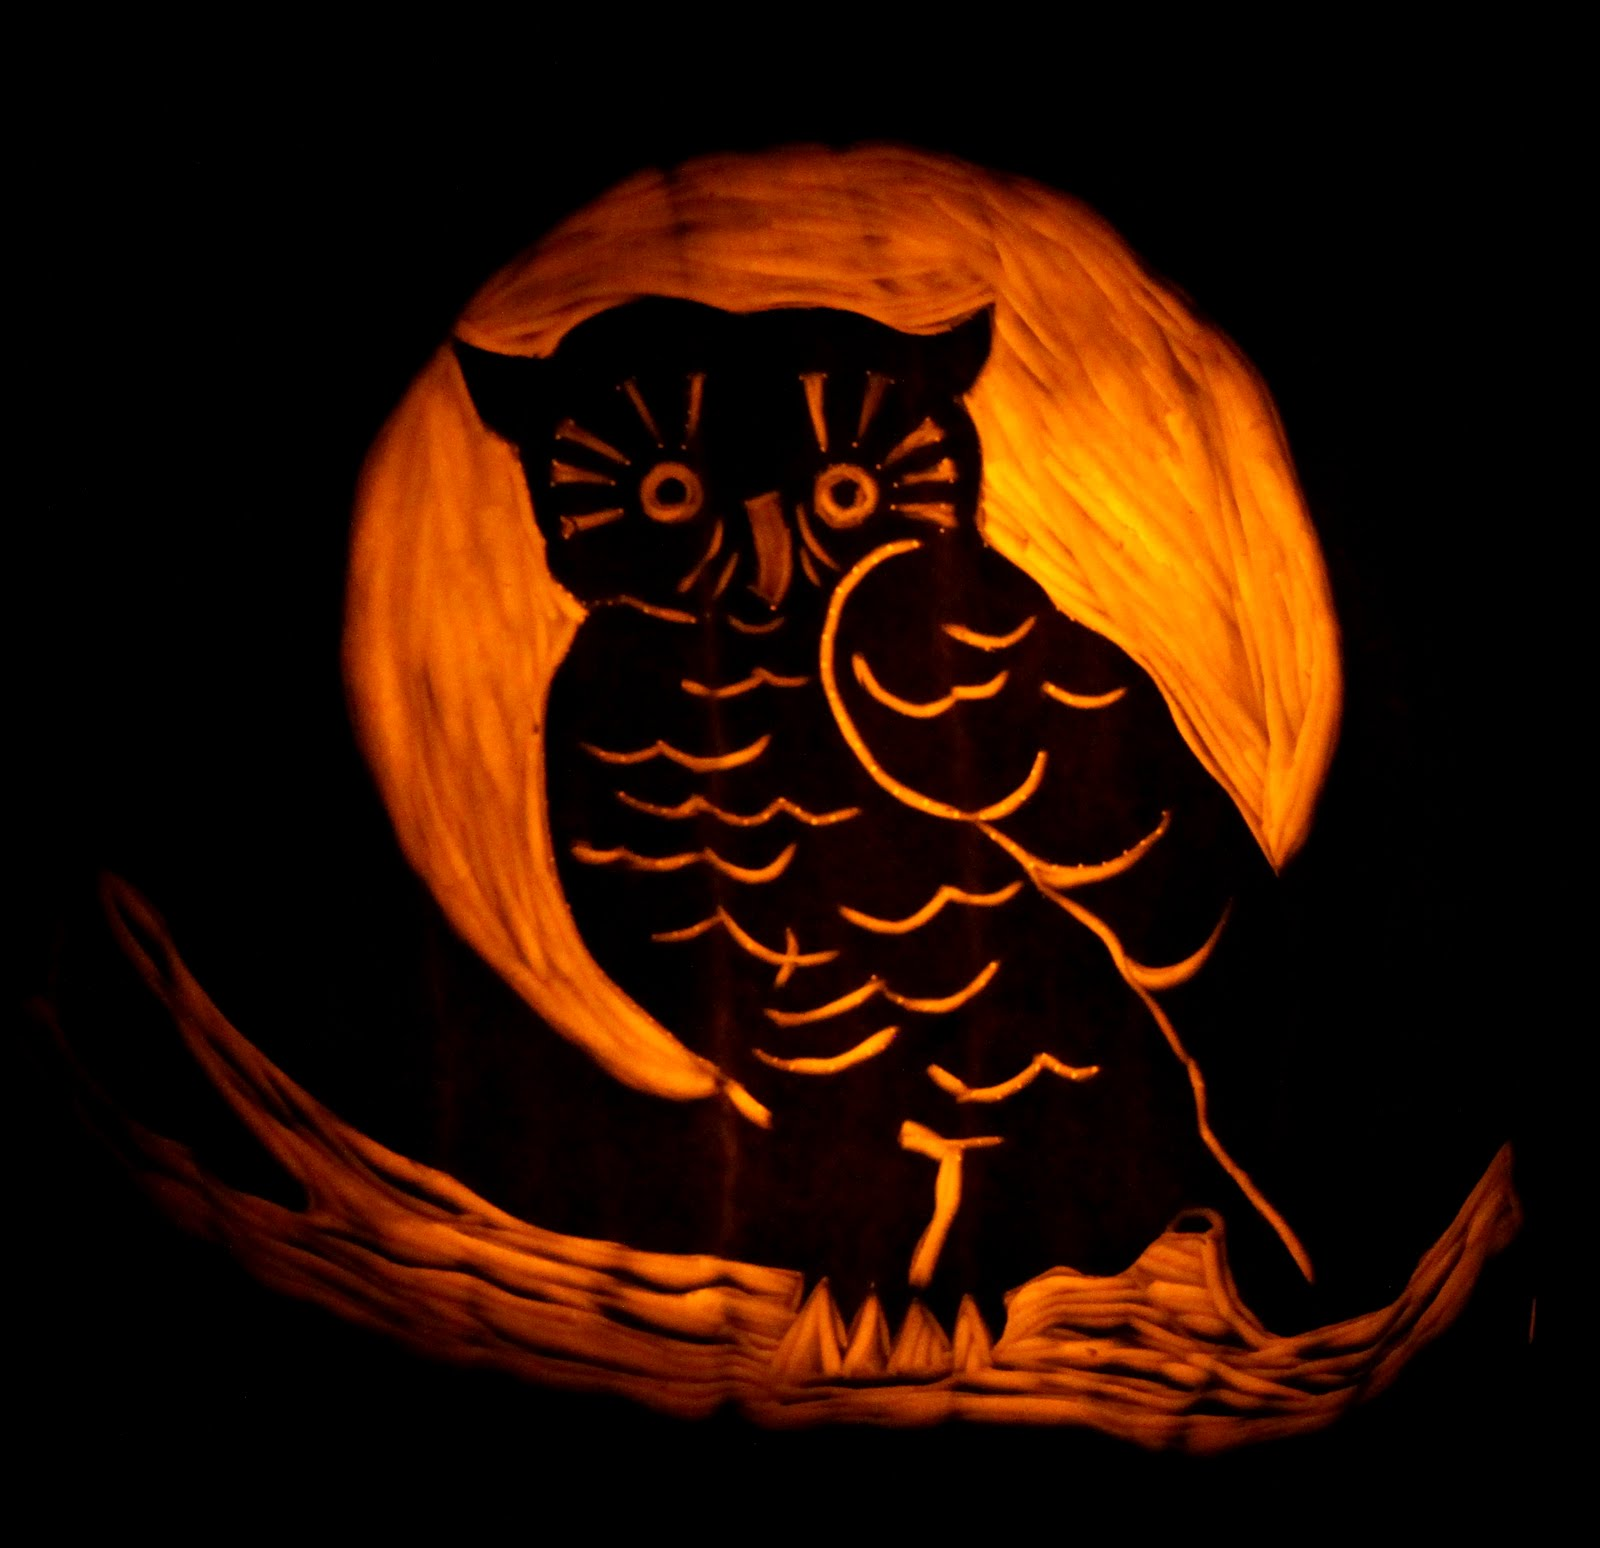 Designed by chance all hallows eve pumpkin tutorial for Pumpkin carving designs pictures